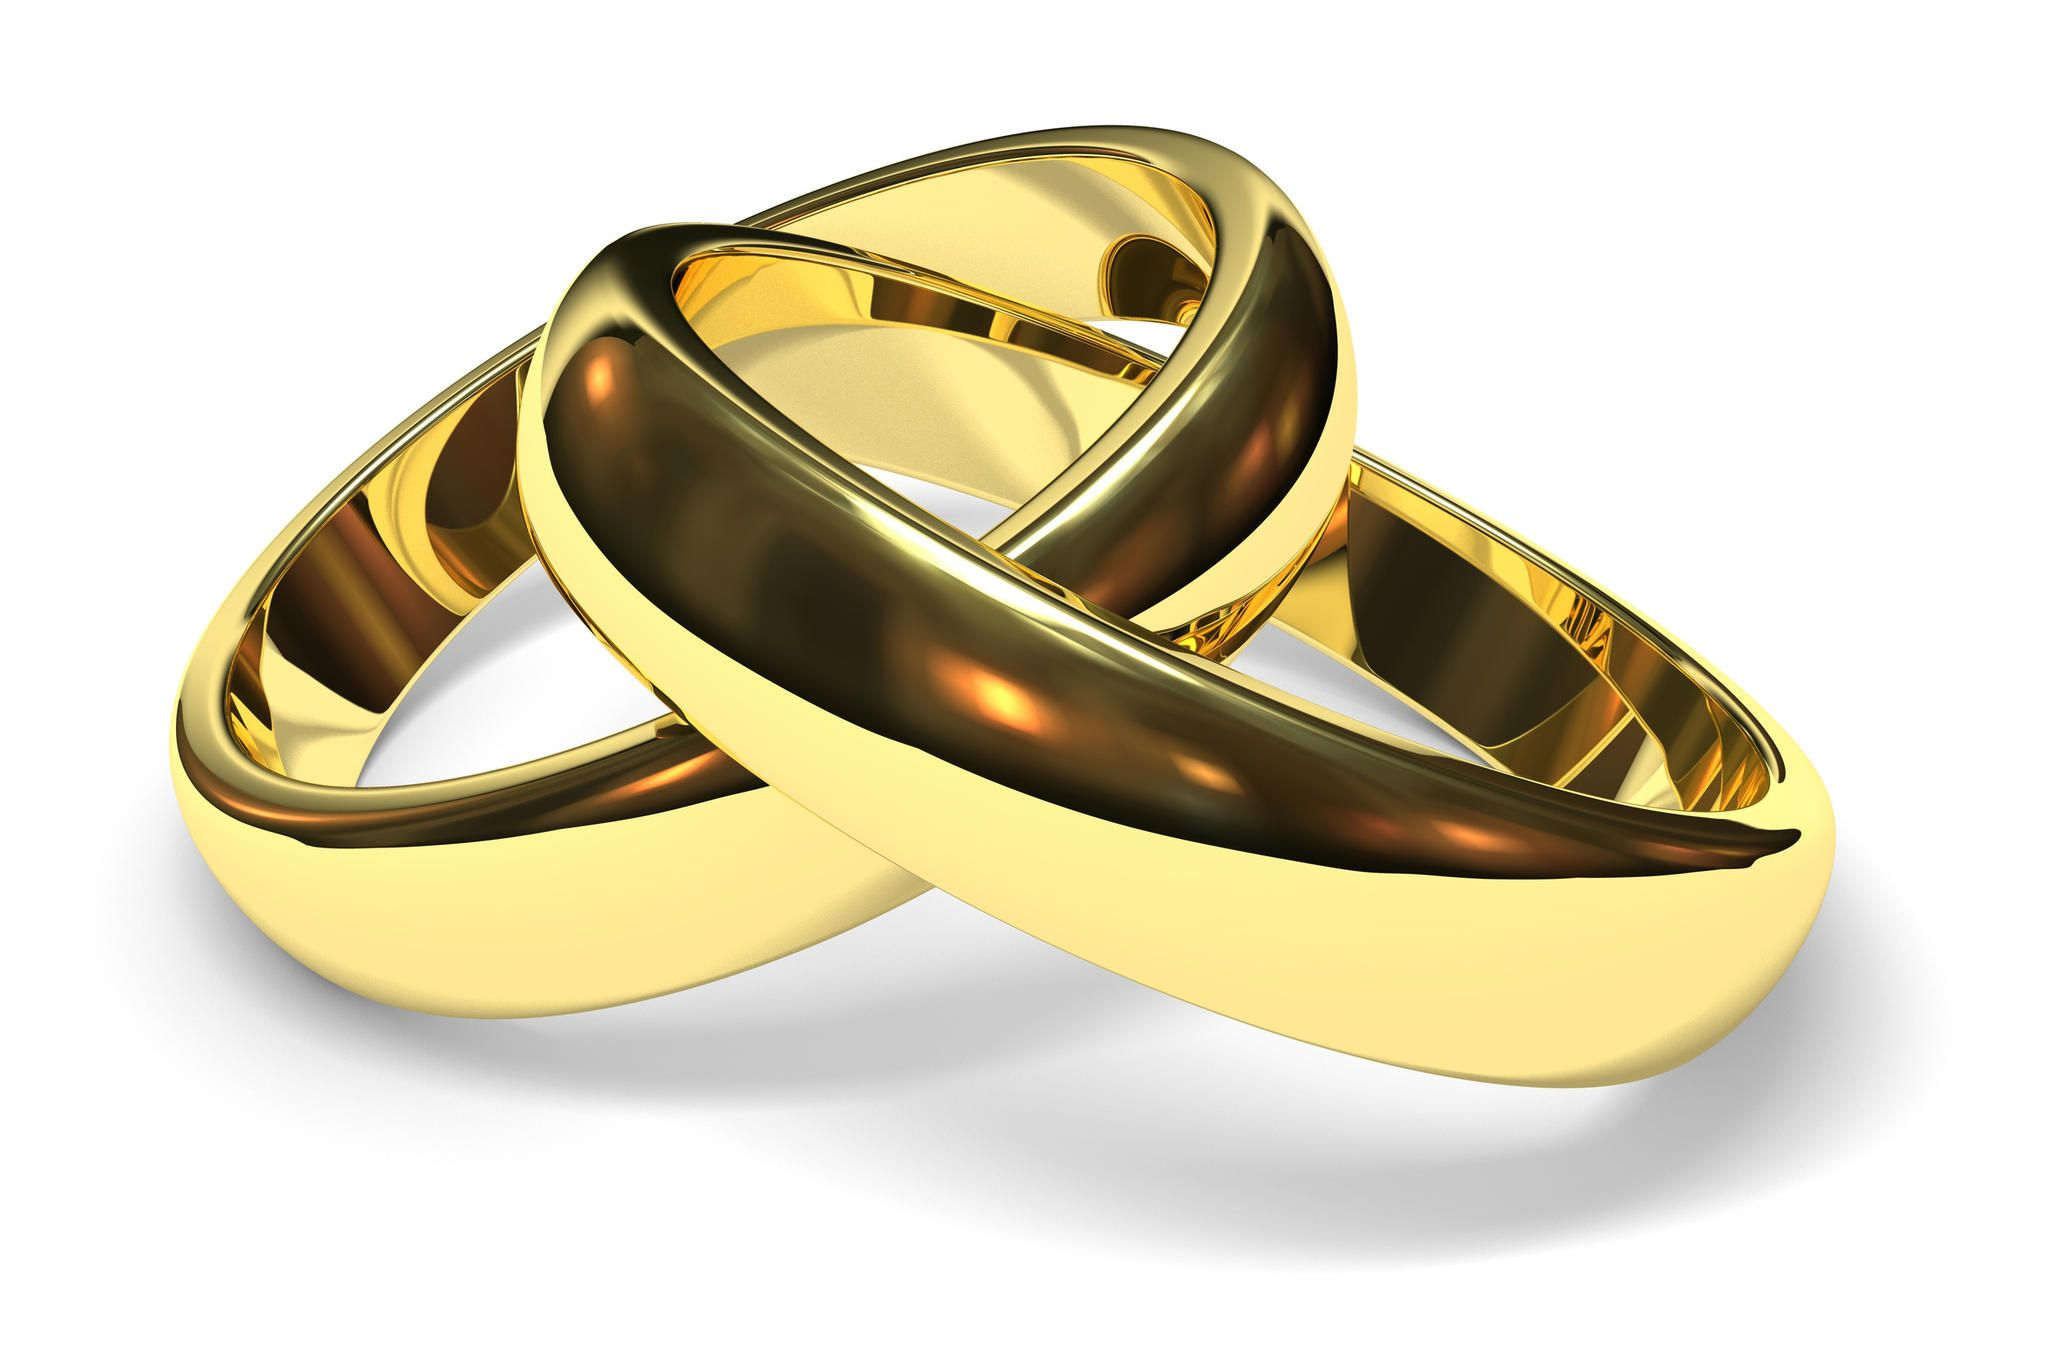 Linked Wedding Rings Clipart Wallpapers Widescreen with High.